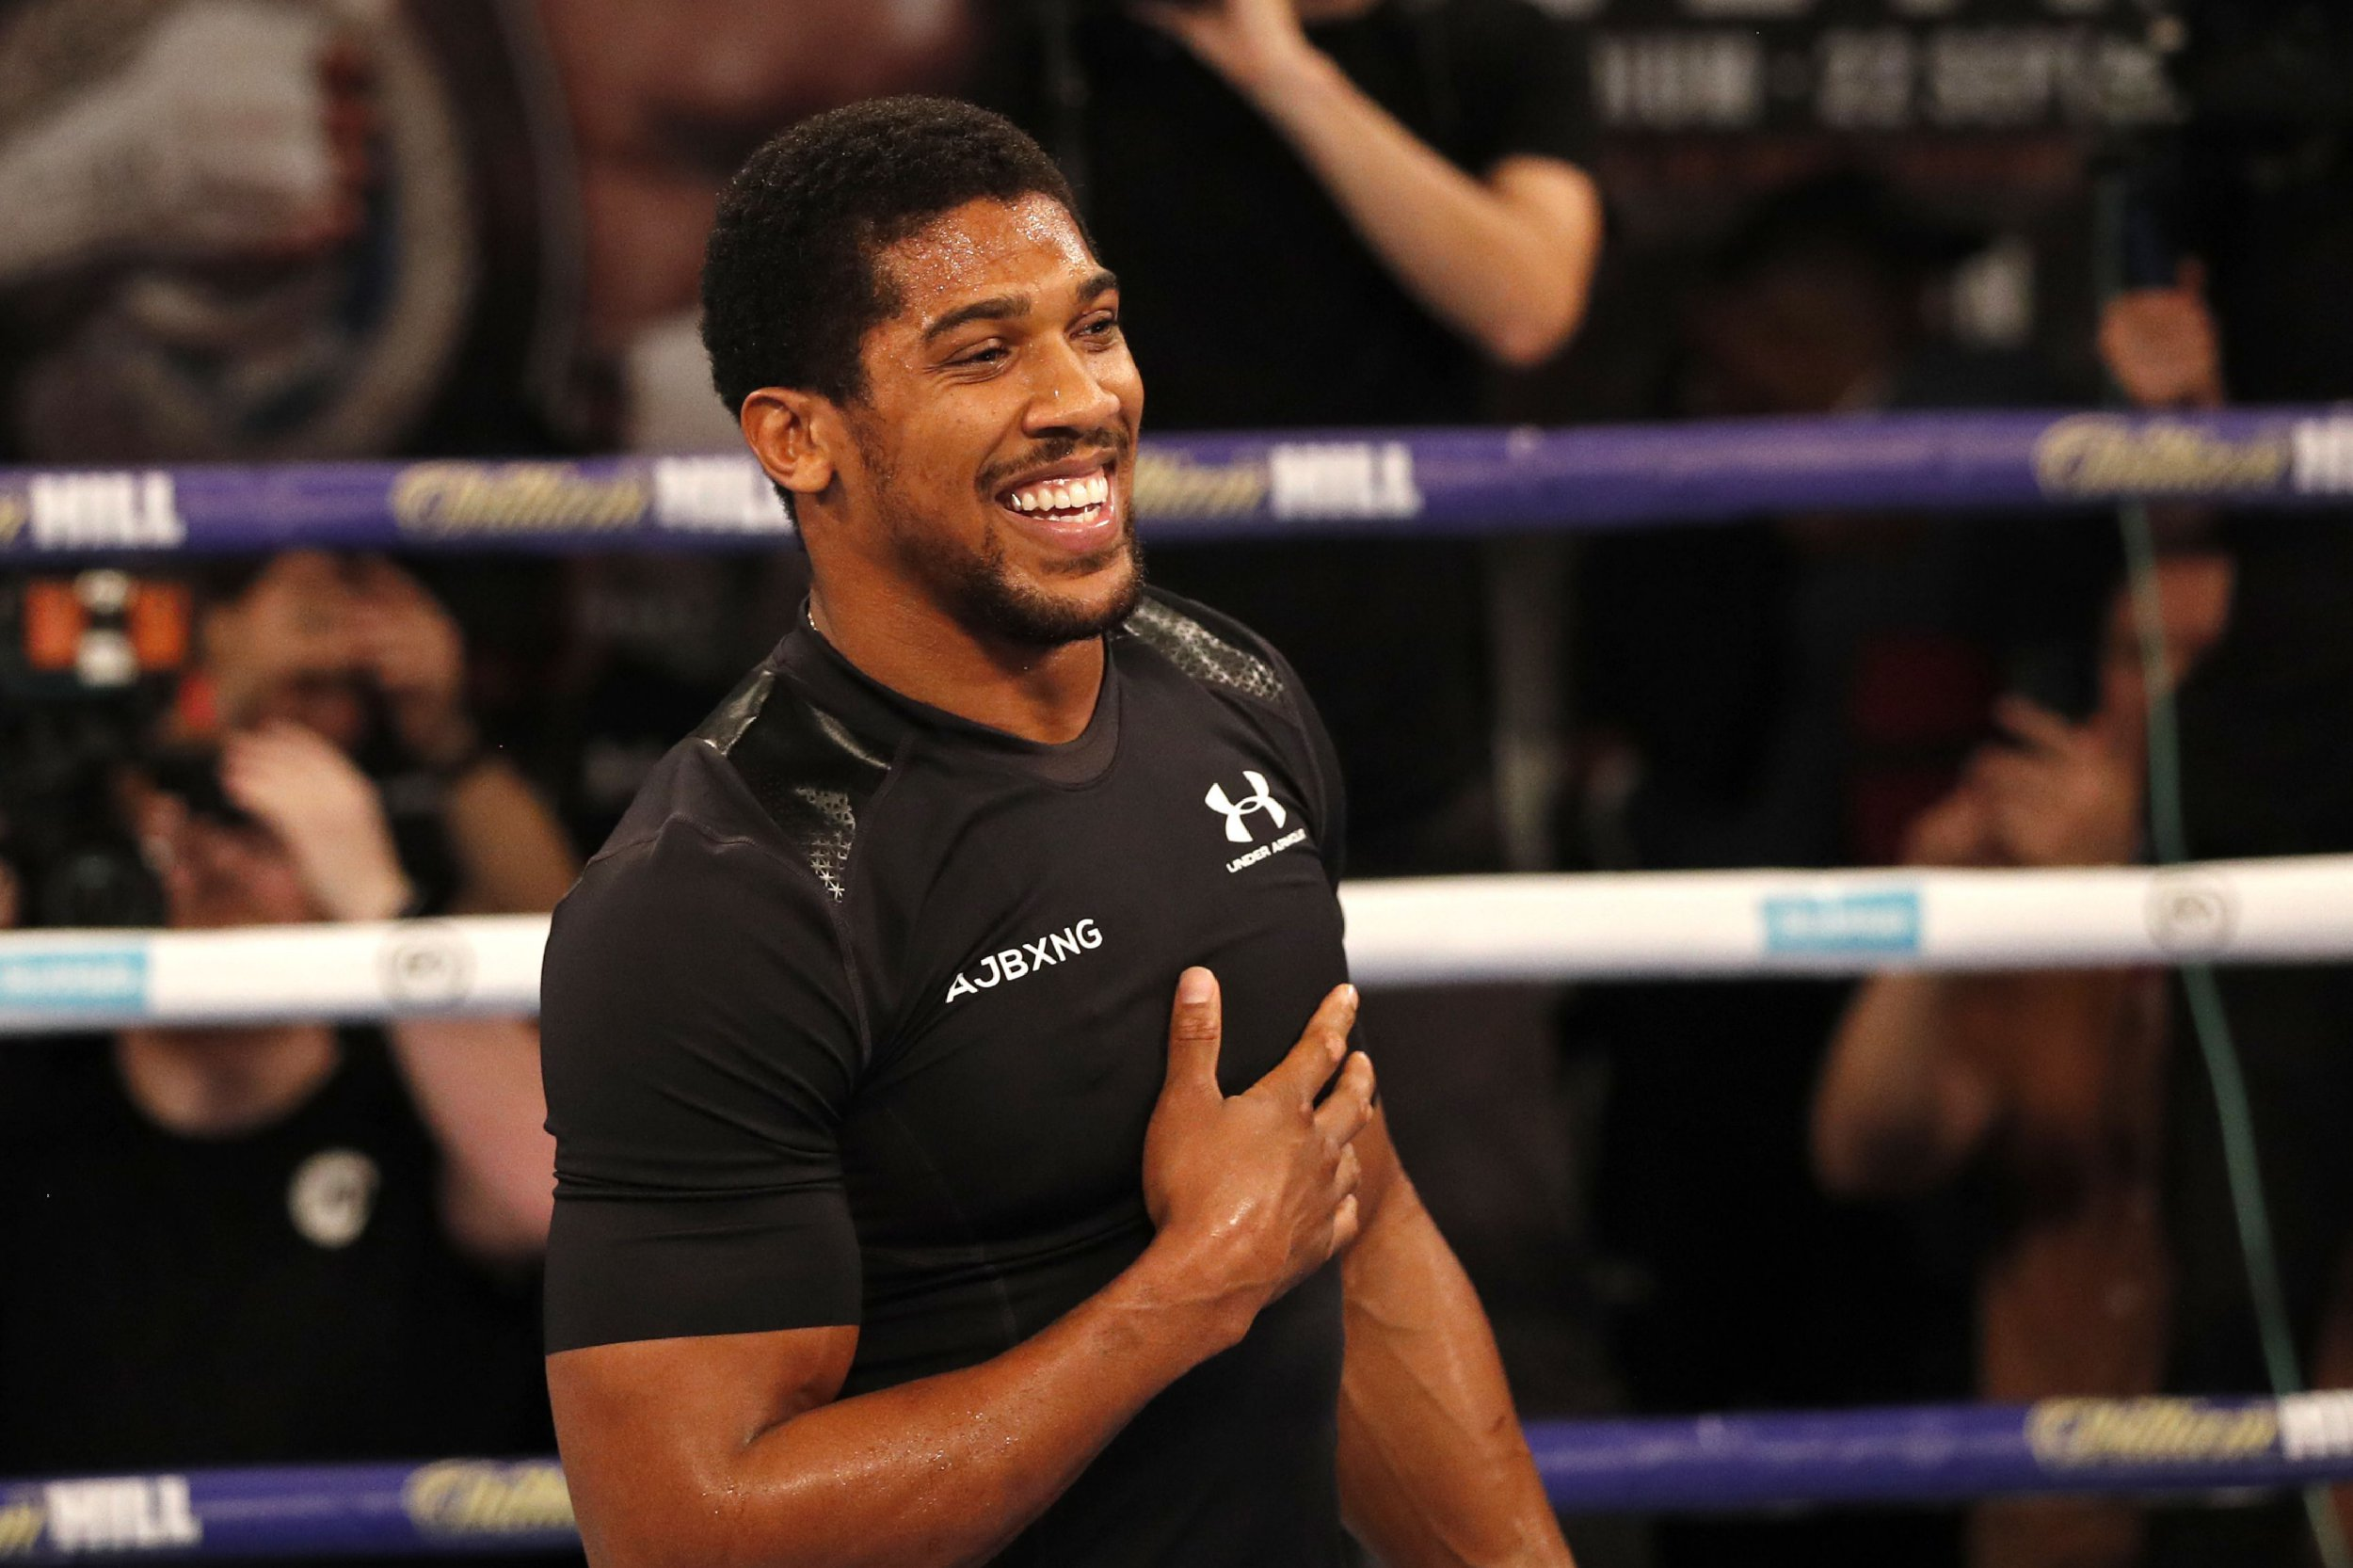 Britain's Anthony Joshua trains during a pre-fight public work out press conference at York Hall, east London on September 19, 2018 ahead of his heavyweight boxing bout against Russia's Alexander Povetkin set for September 22. (Photo by Adrian DENNIS / AFP)ADRIAN DENNIS/AFP/Getty Images